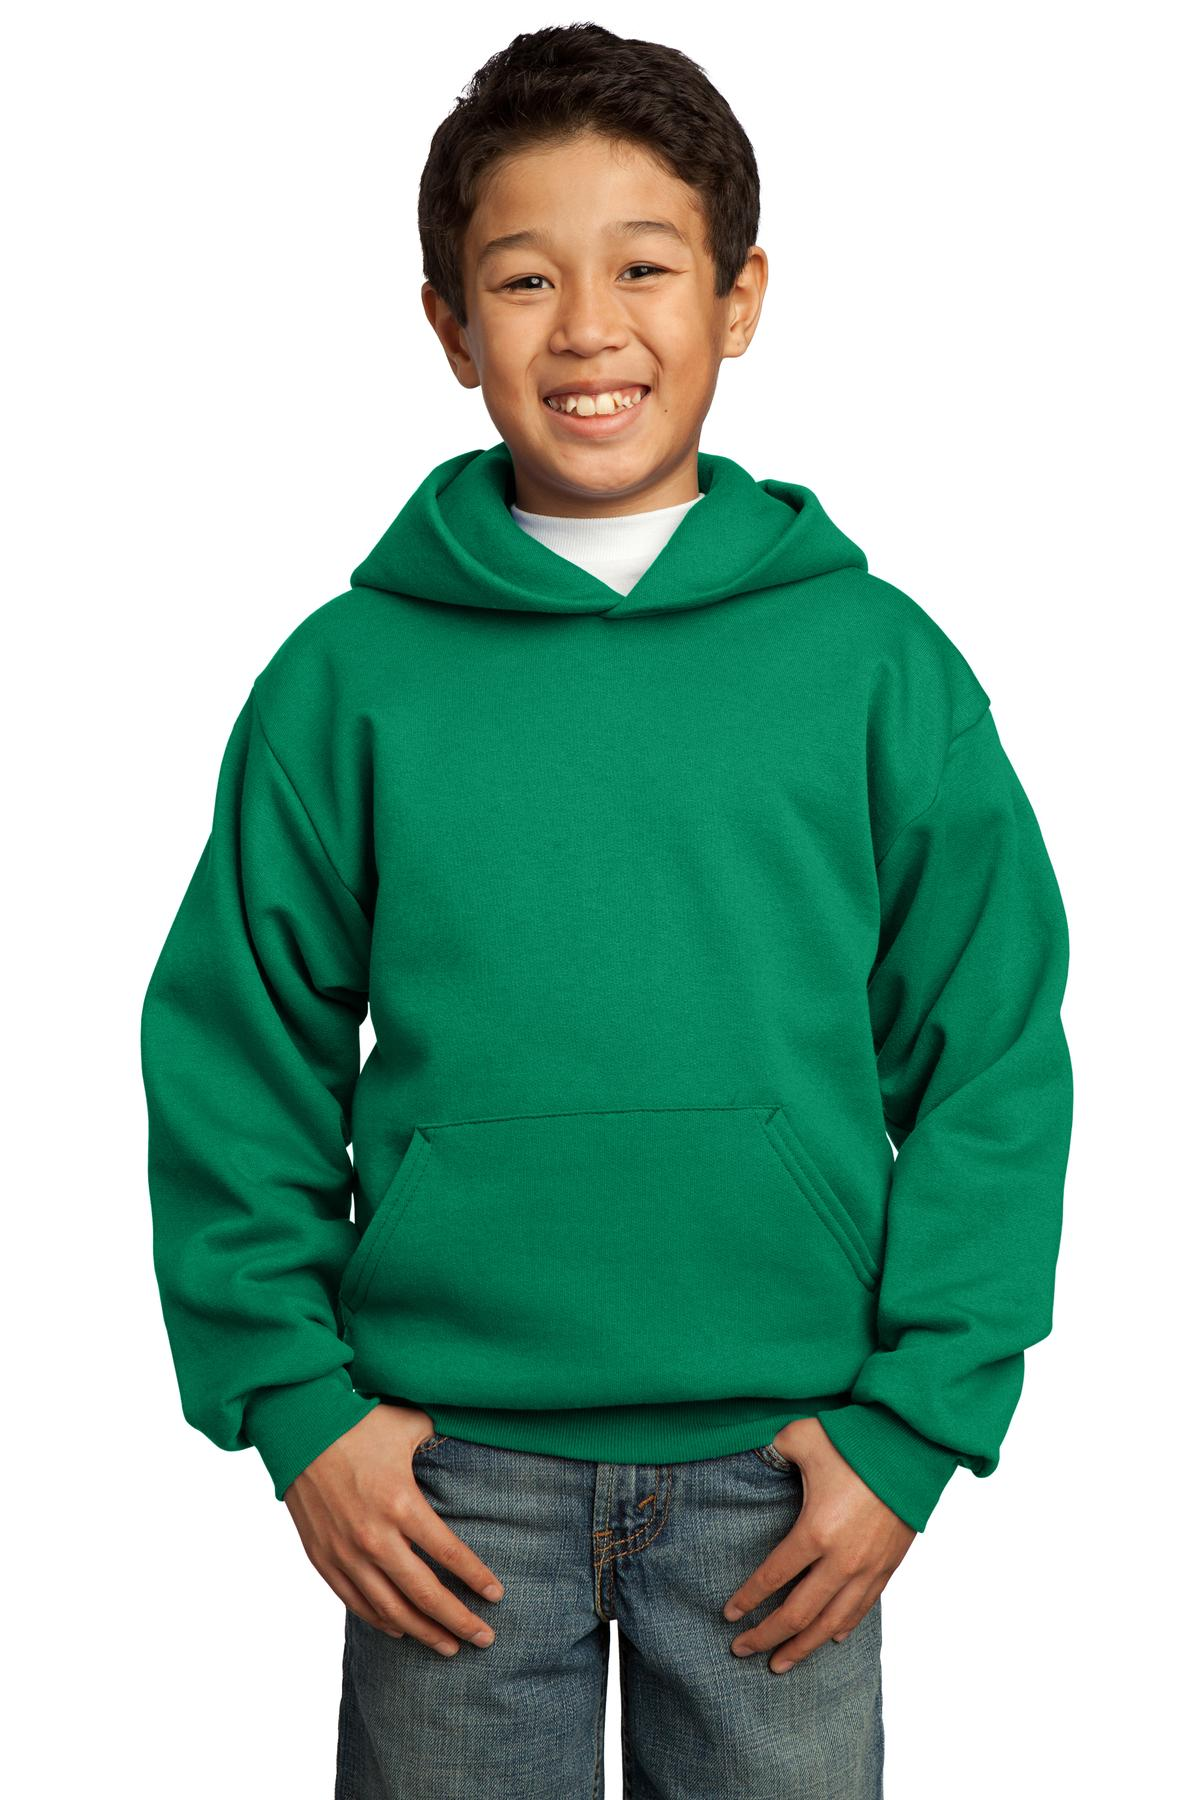 Port & Company ®  - Youth Core Fleece Pullover Hooded Sweatshirt.  PC90YH - Kelly Green